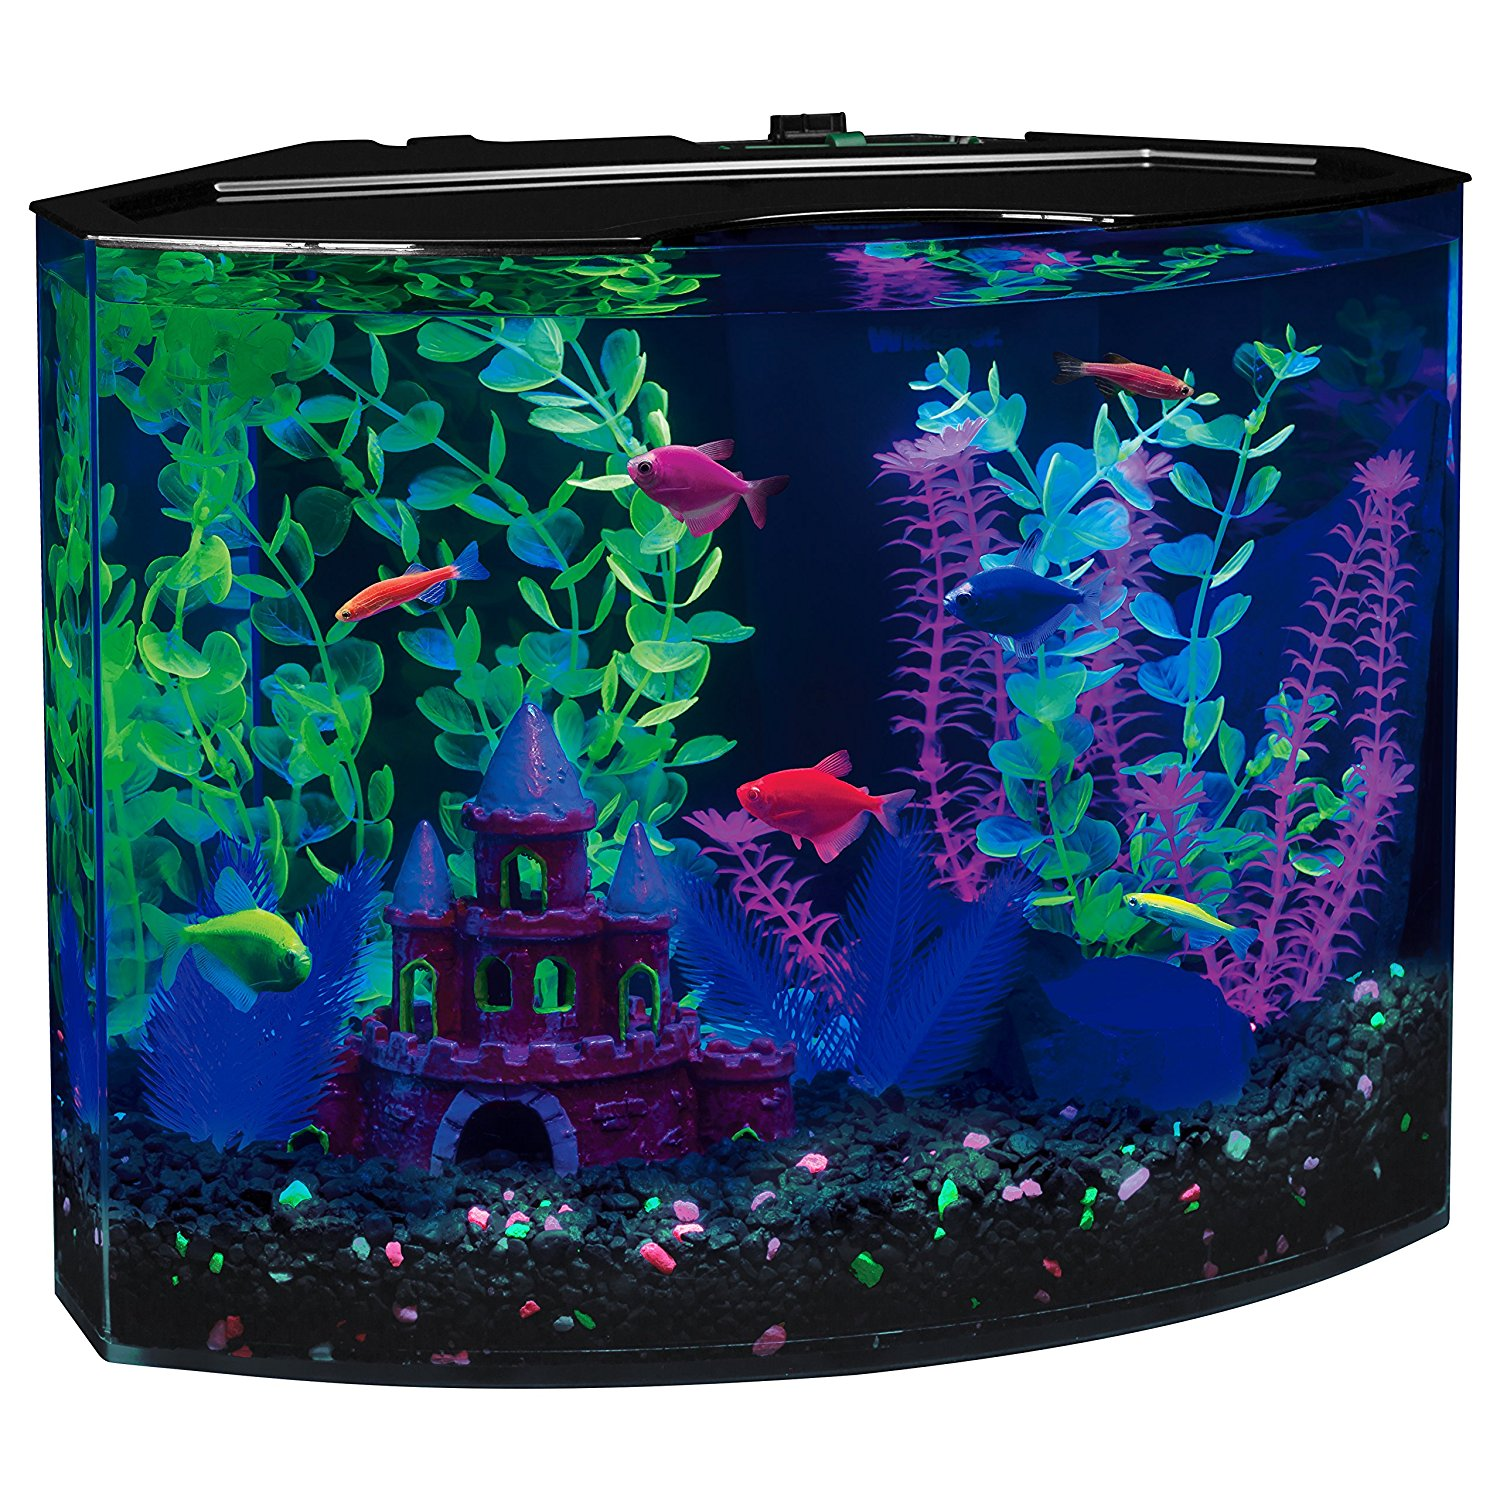 glofish 5 gallon aquarium kit review